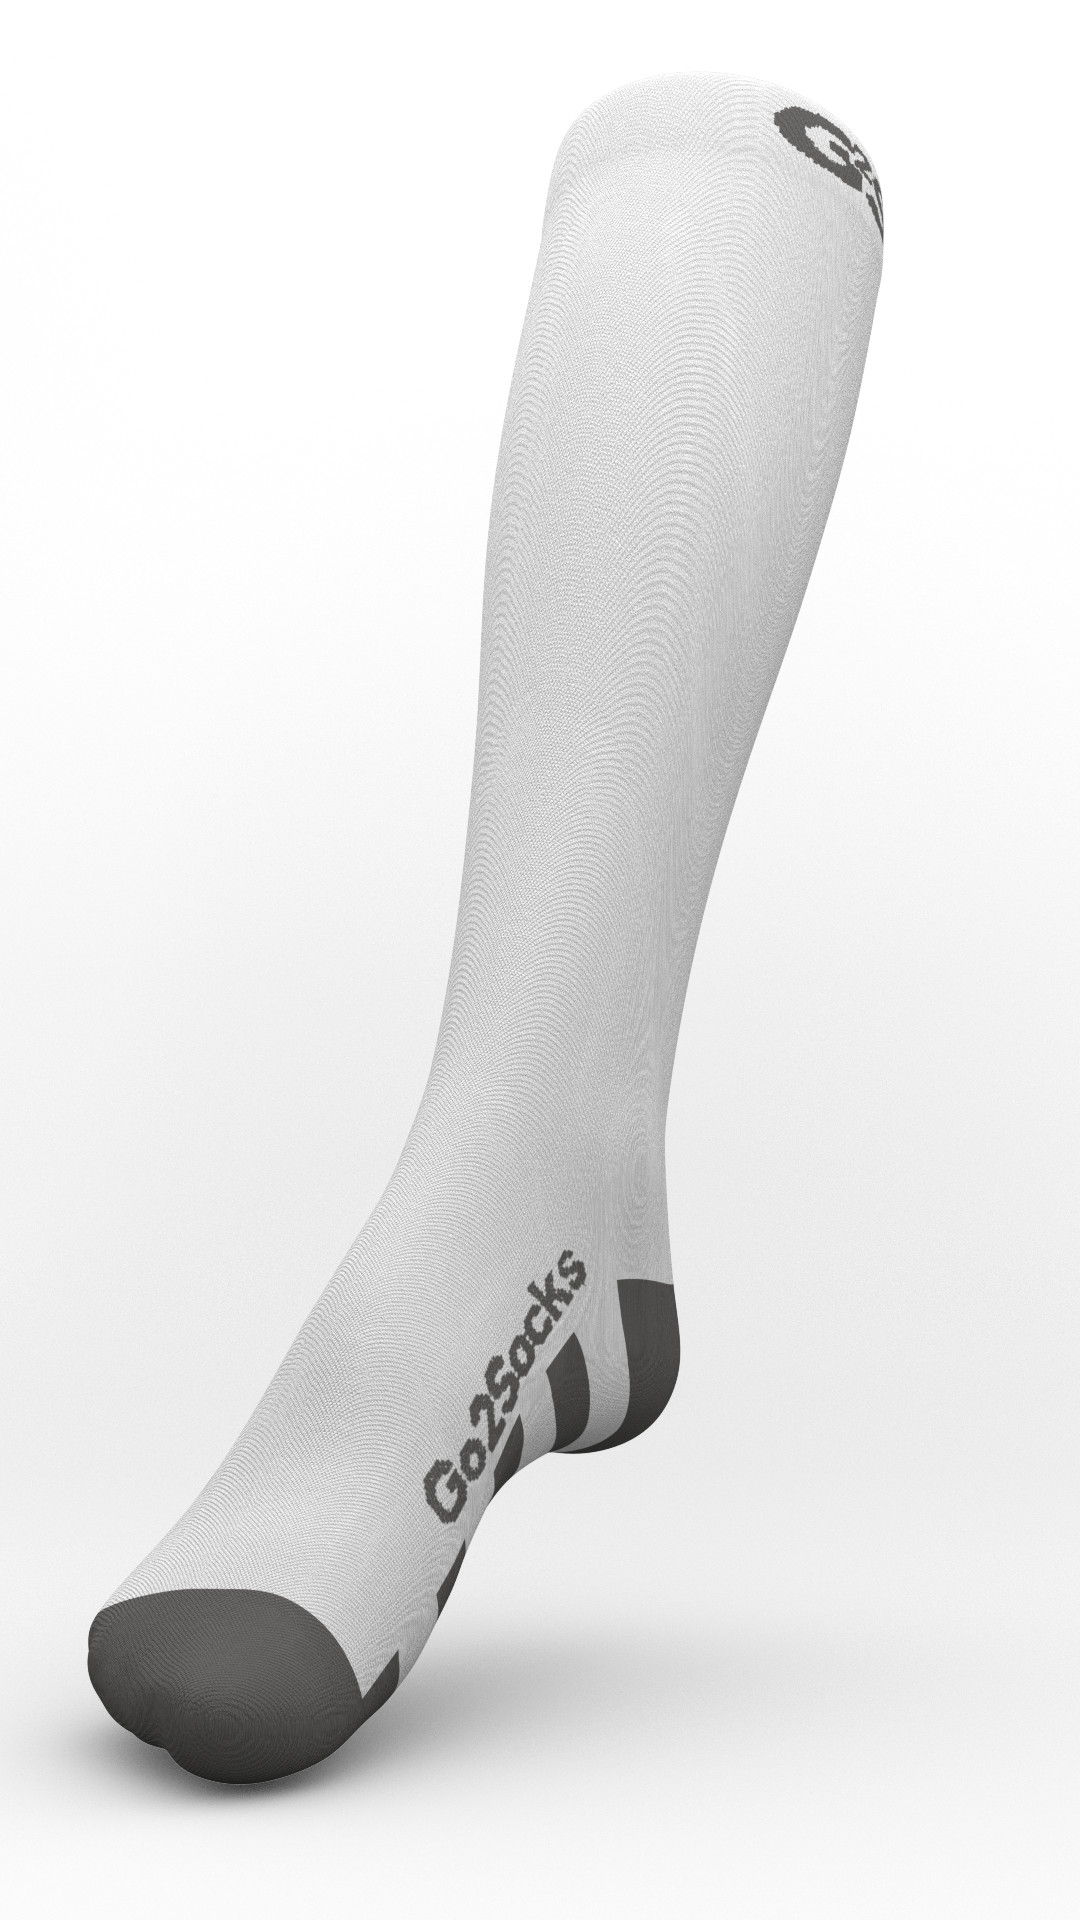 Alex kane sock render 2016 7 28